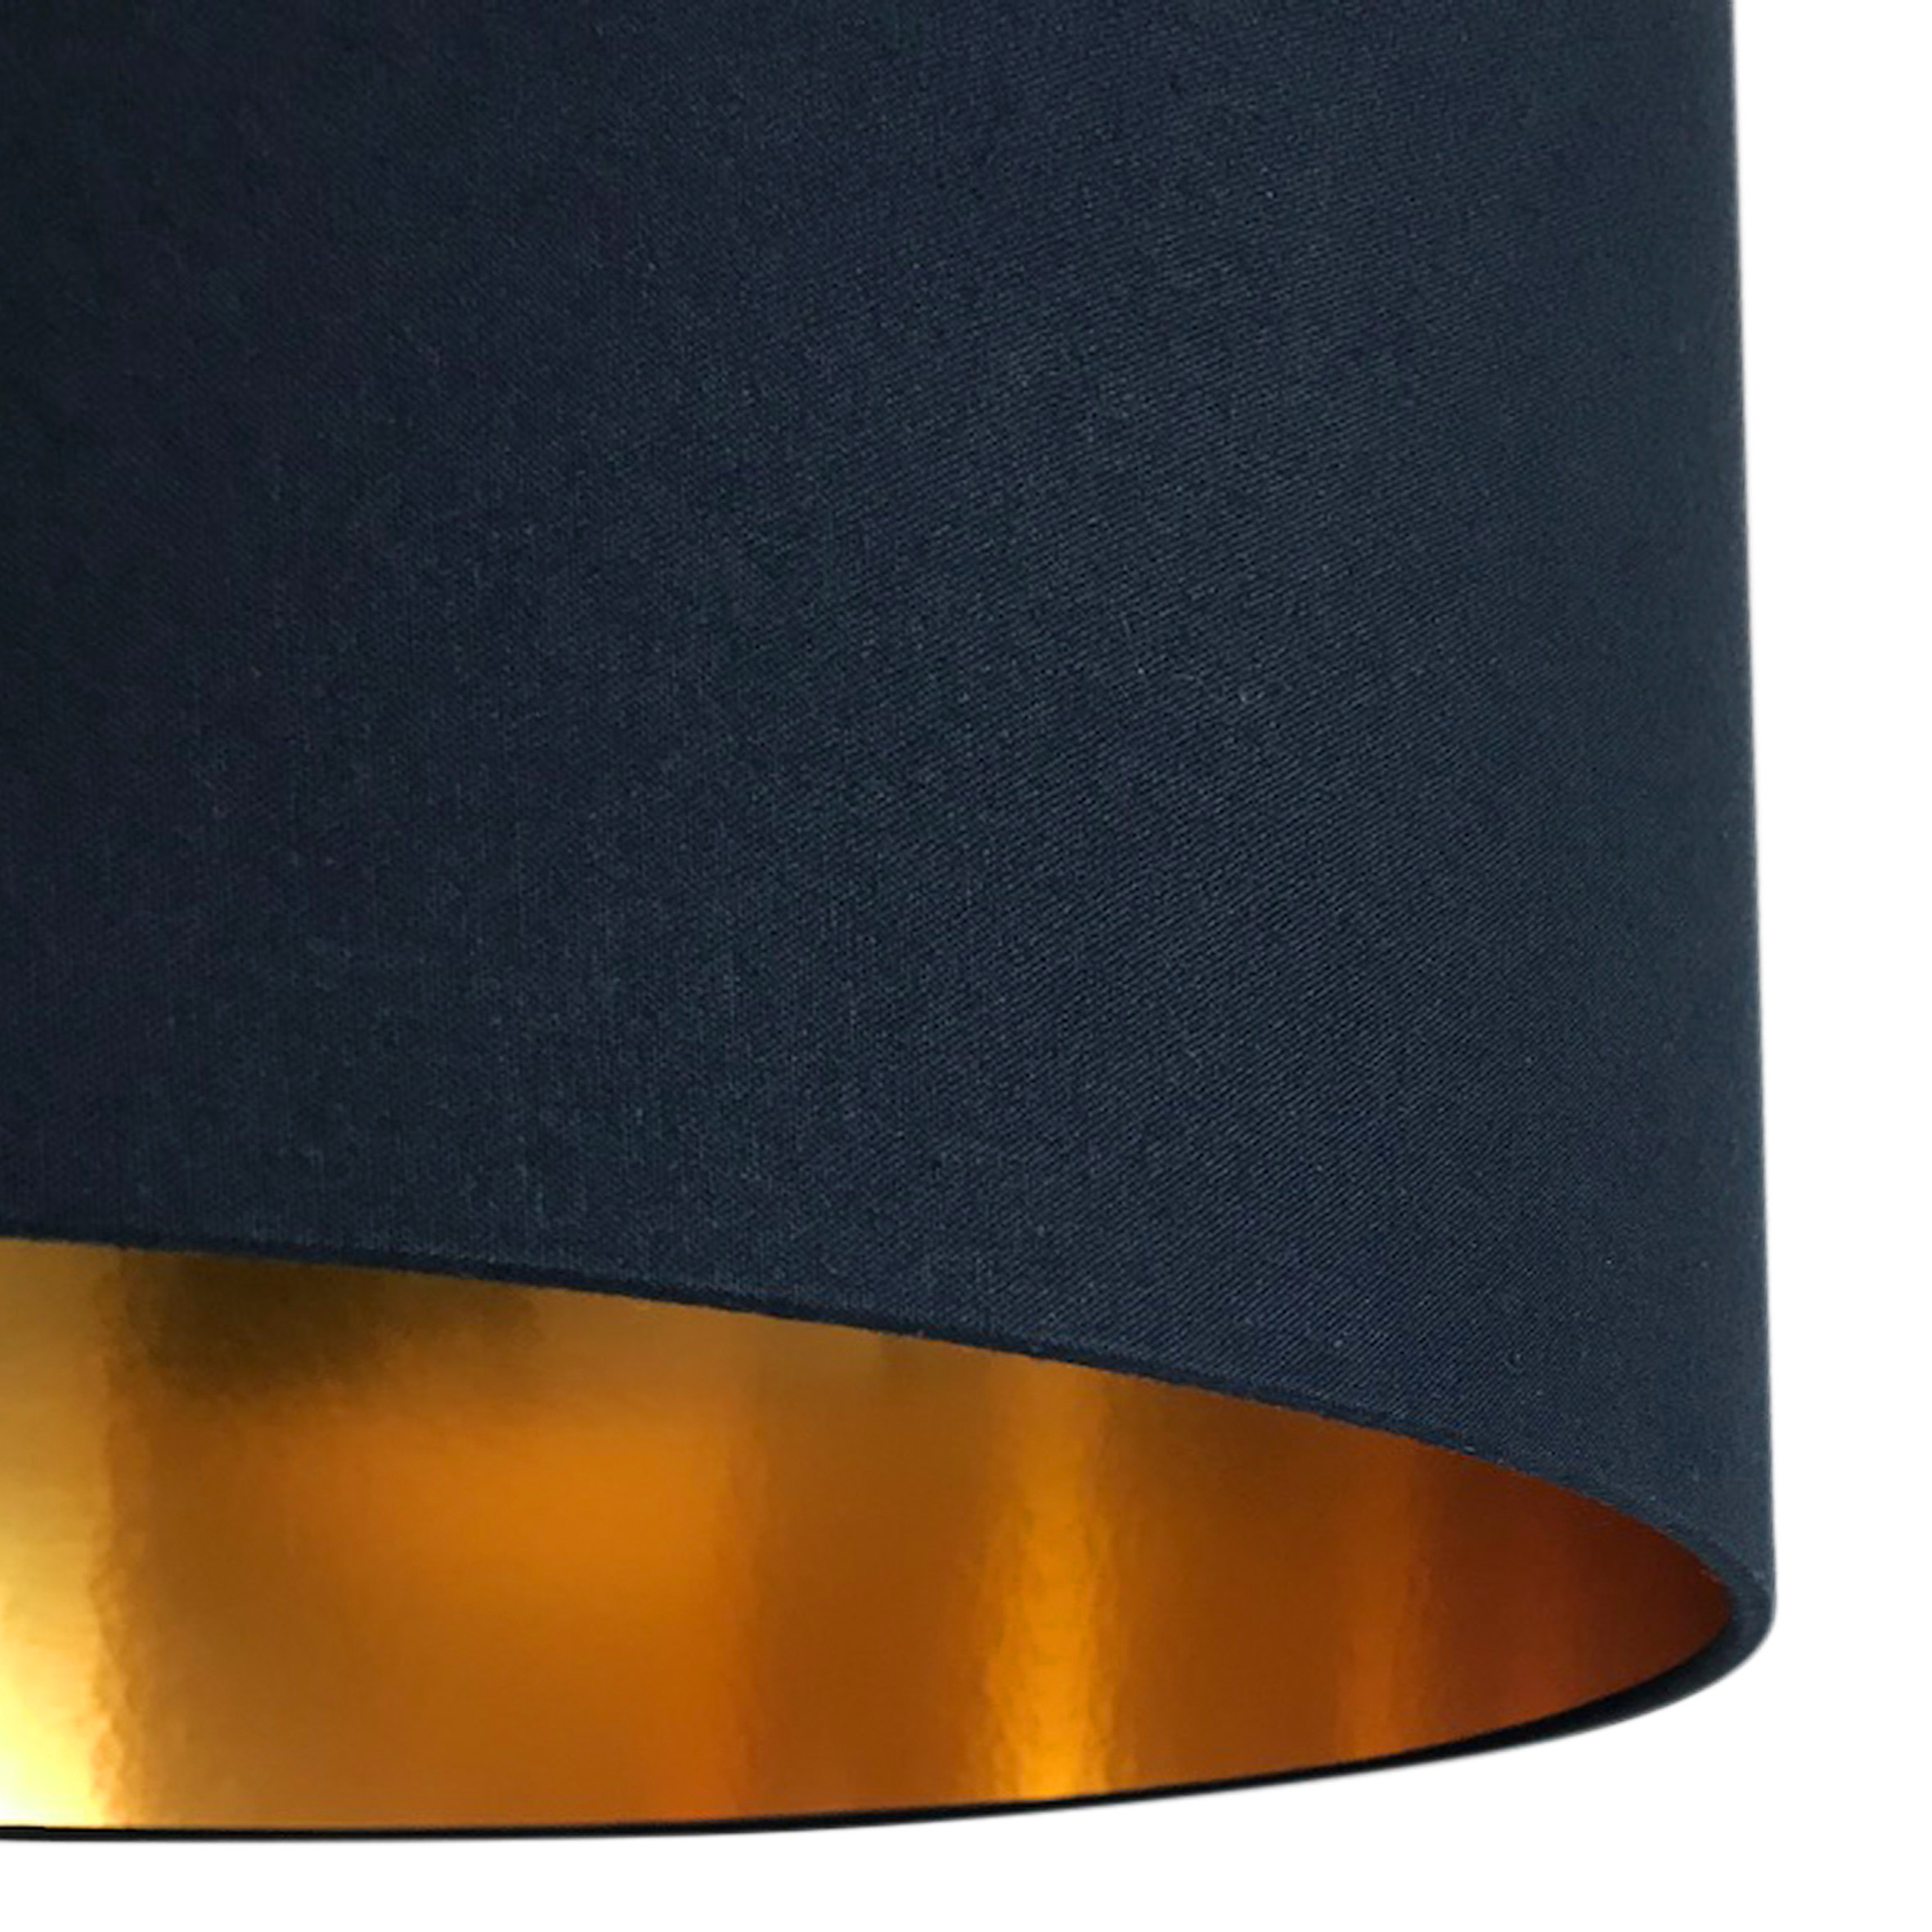 Deep E Navy Blue Lampshade With